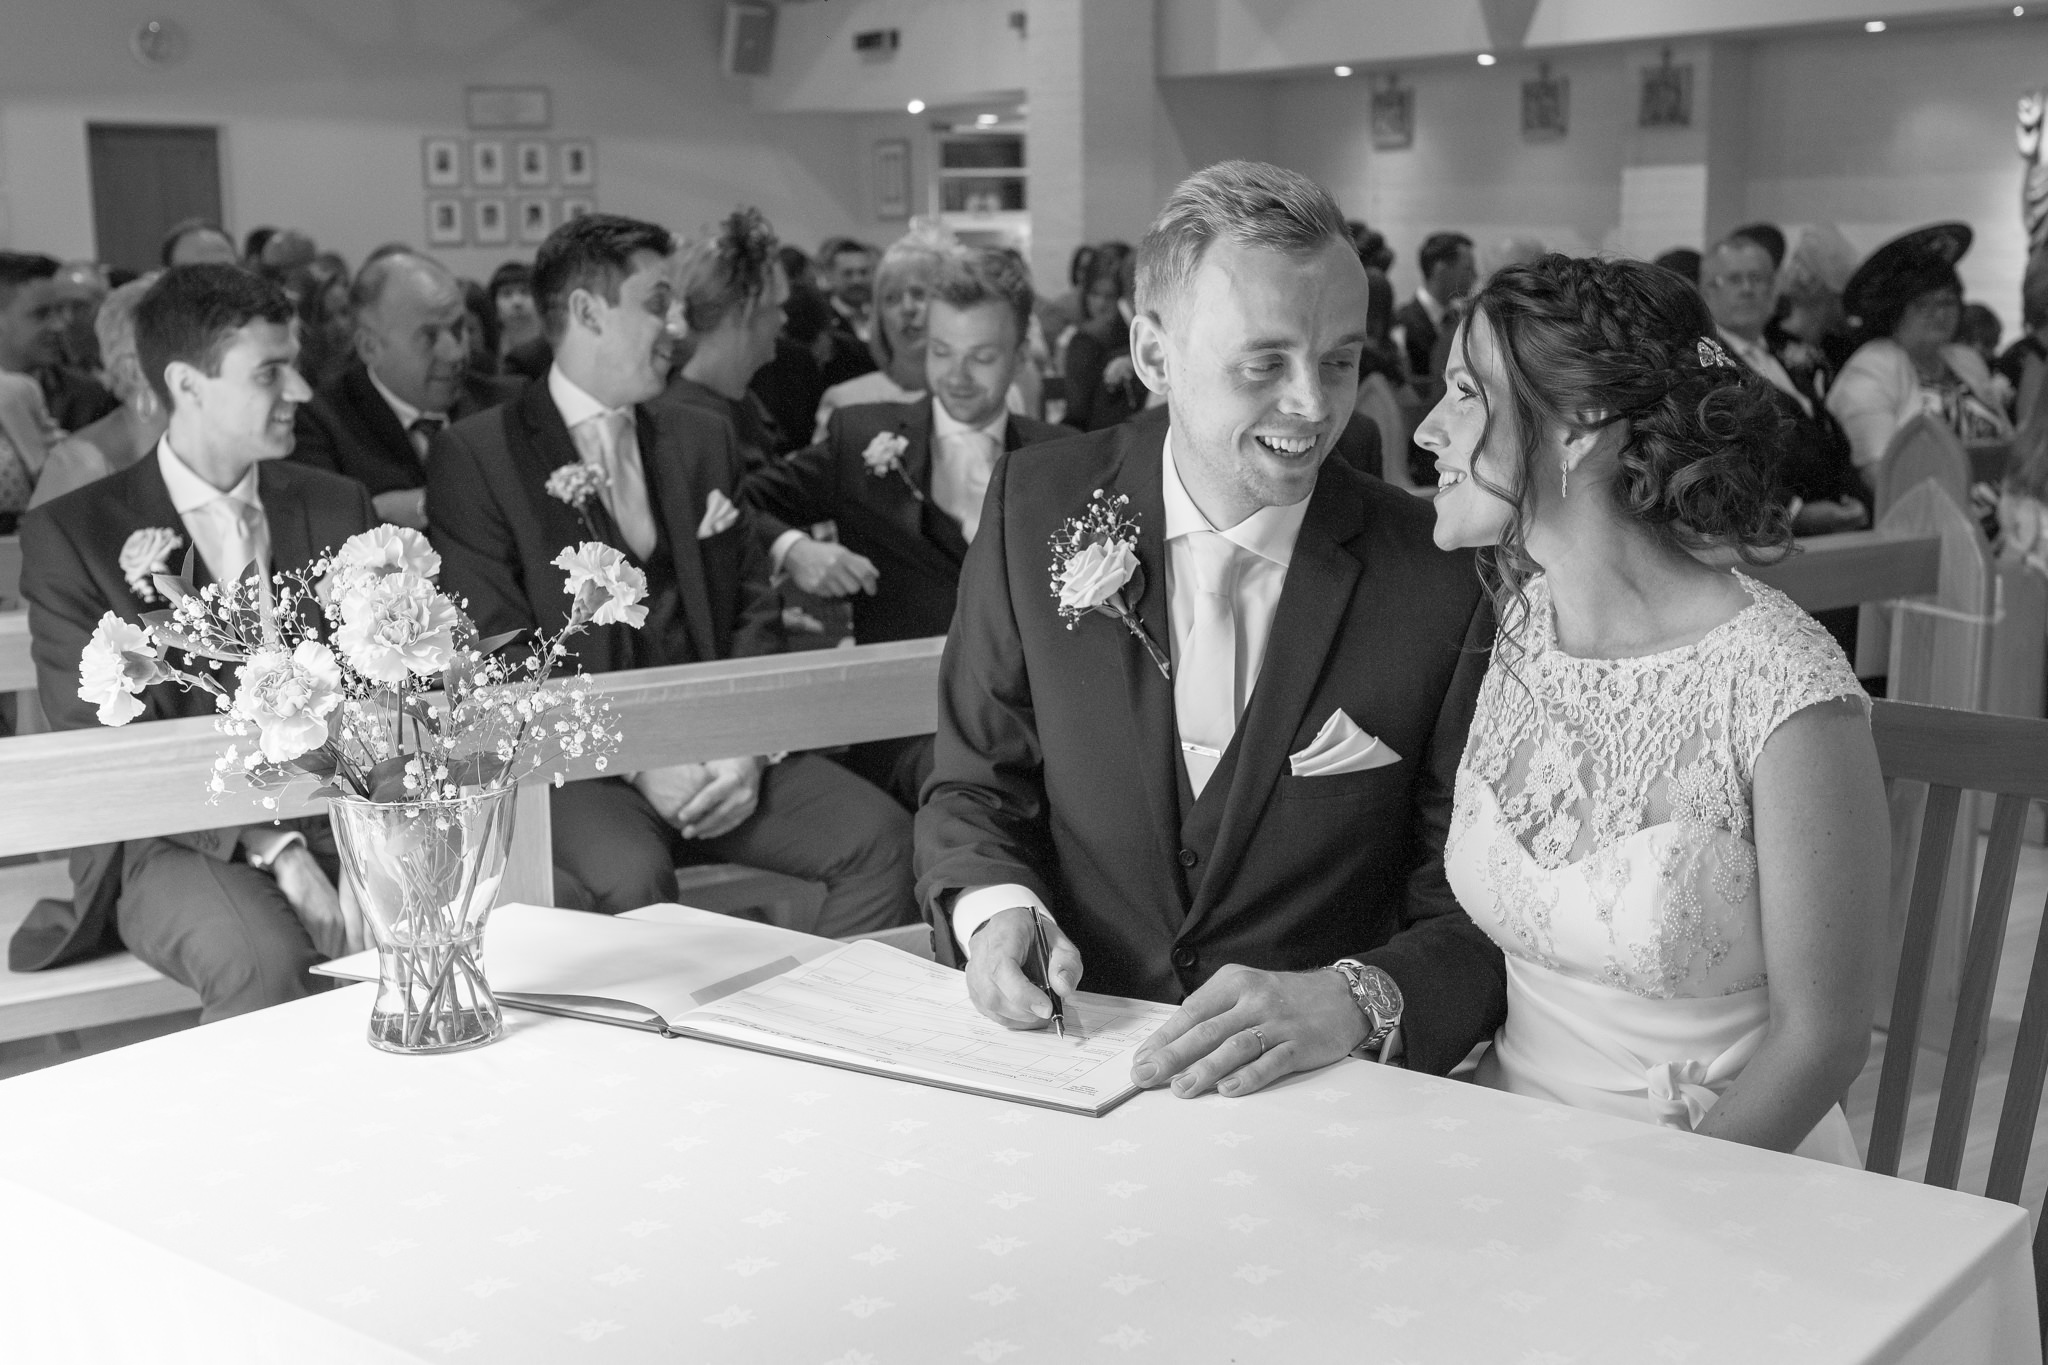 Woldingham School Wedding - Robin Ball Photography - Kate and Lee-018.jpg